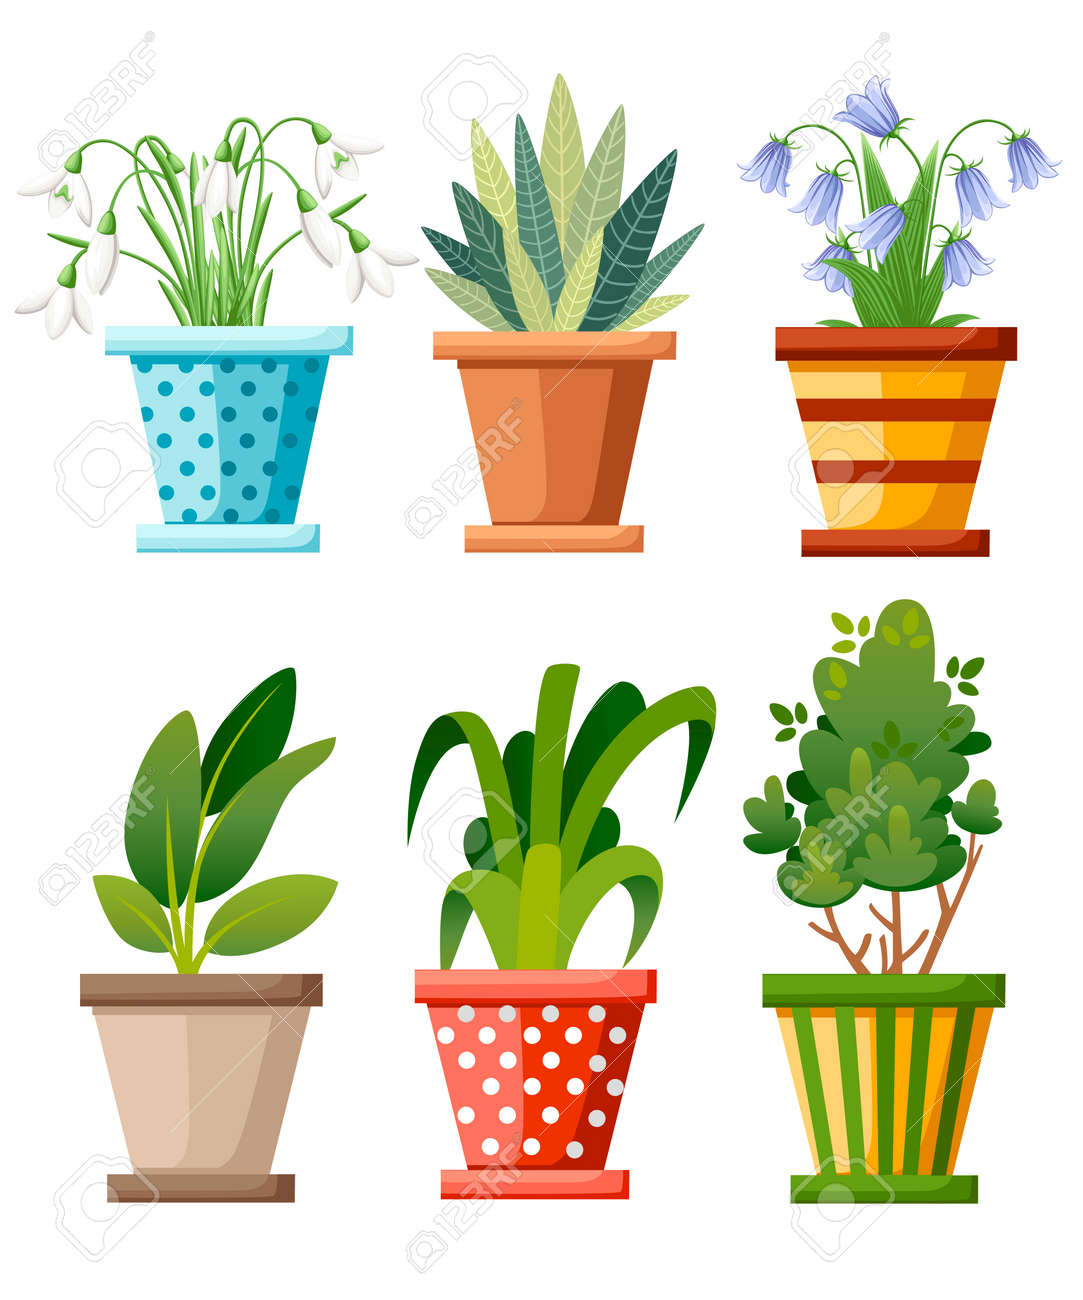 House Plants That Never Die... Indoor Plant Illustrations! - Essem  Creatives   Watercolor Clipart & Business Branding